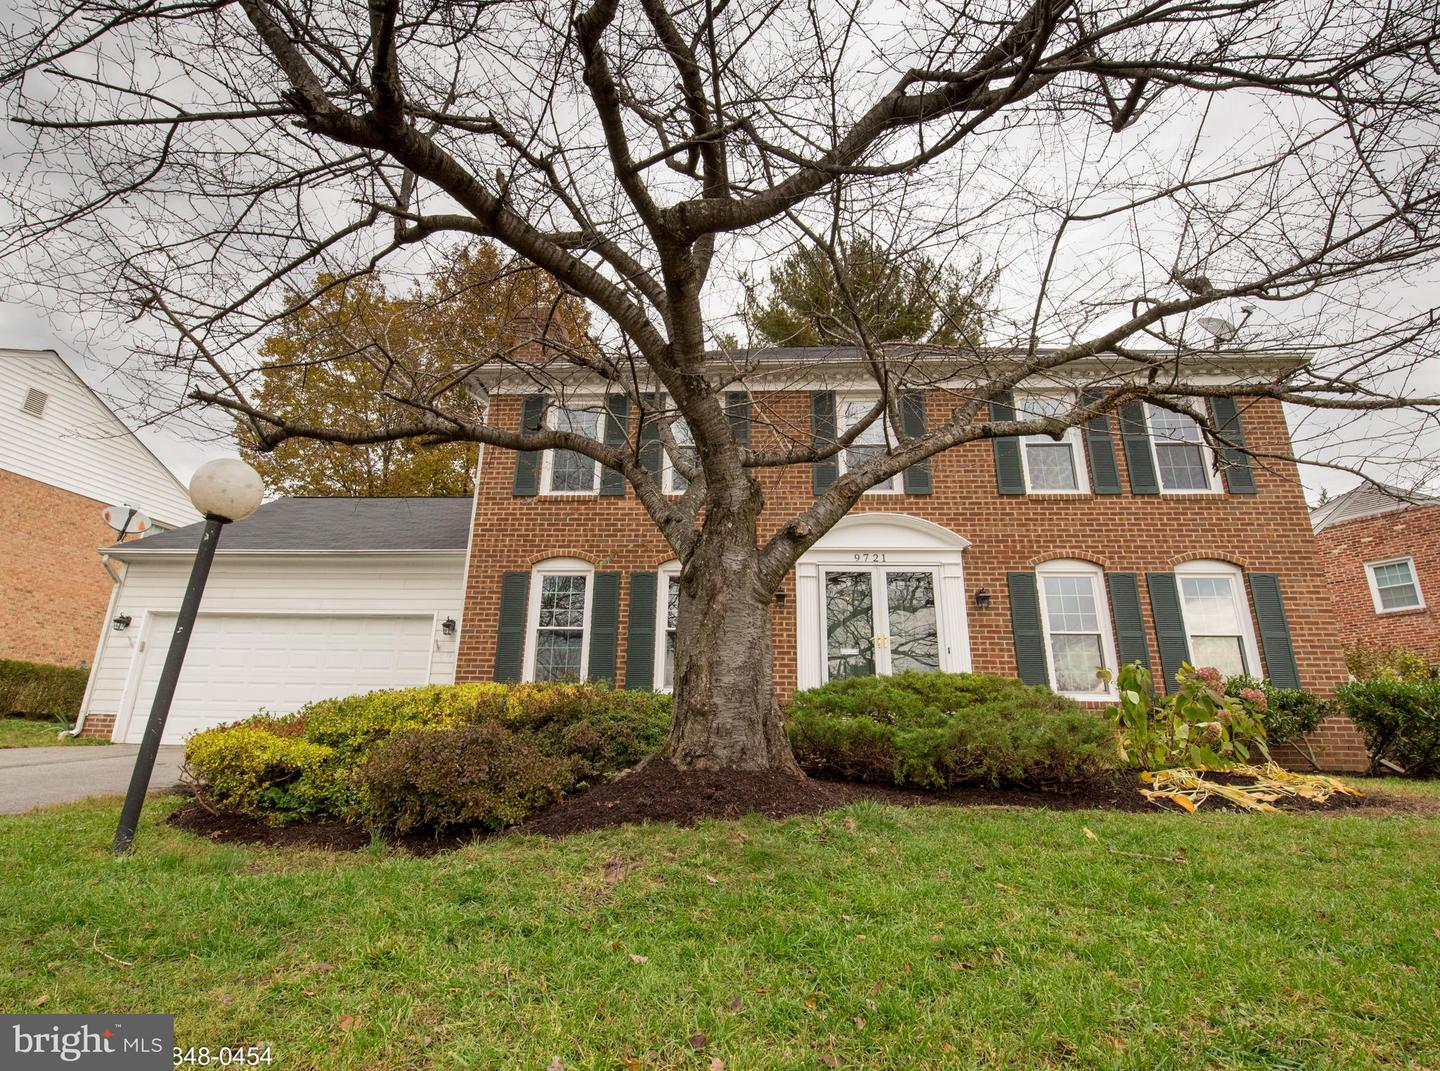 9721 LOOKOUT PLACE, GAITHERSBURG, Maryland